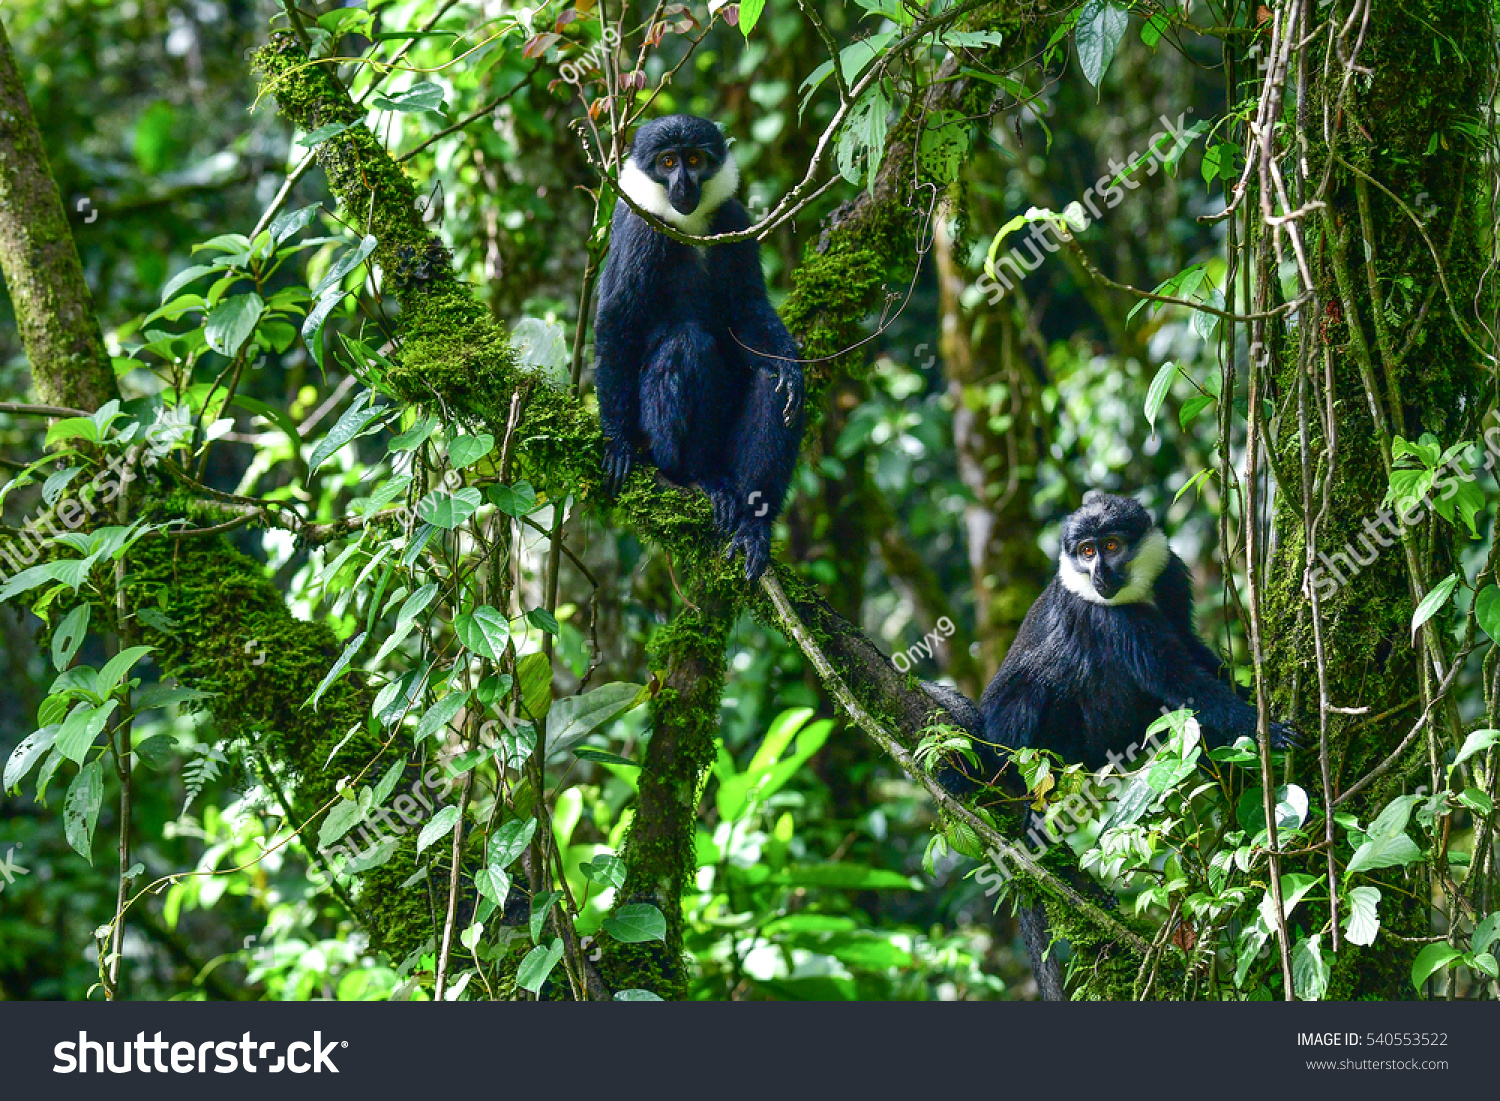 Lhoests monkey cercopithecus l hoesti tropical stock photo royalty the lhoests monkey cercopithecus l hoesti in tropical rainforests of africa sciox Image collections